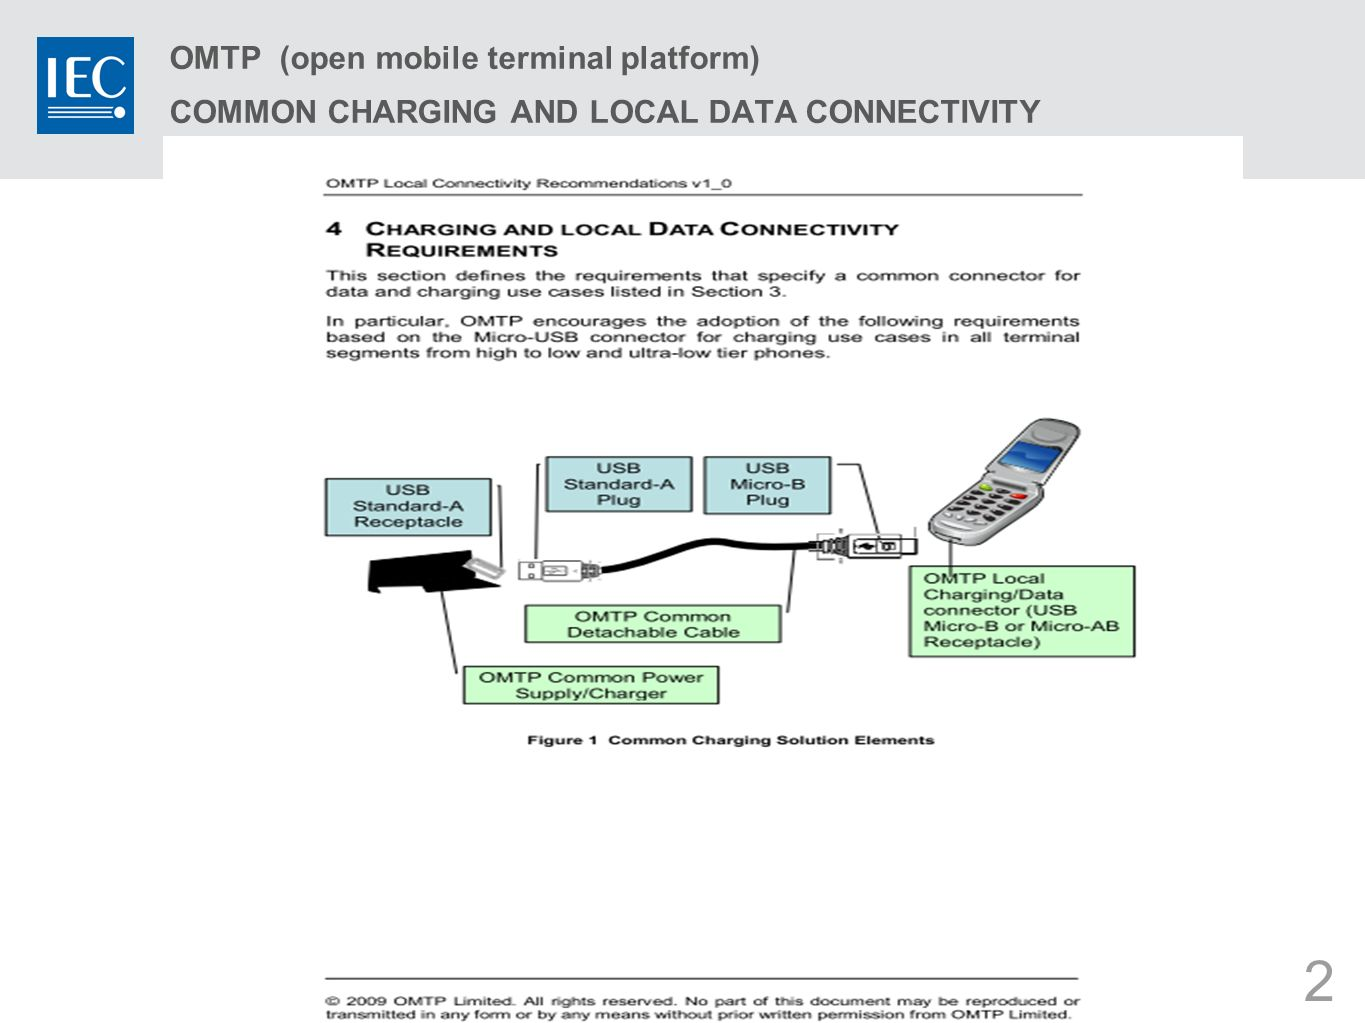 2 OMTP (open mobile terminal platform) COMMON CHARGING AND LOCAL DATA CONNECTIVITY